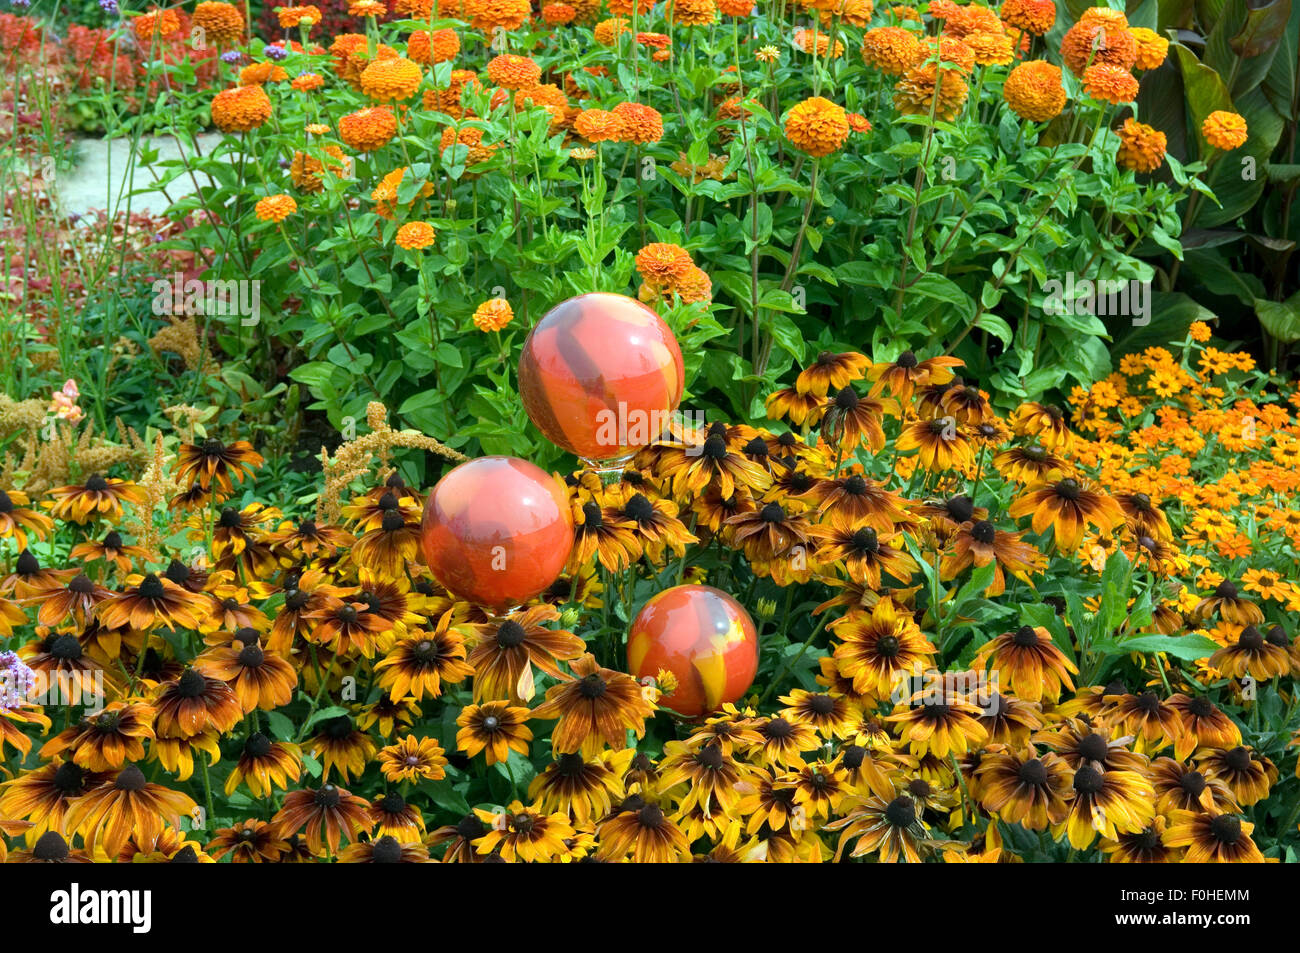 Rosenkugeln Blumenbeet Stock Photo 86436580 Alamy